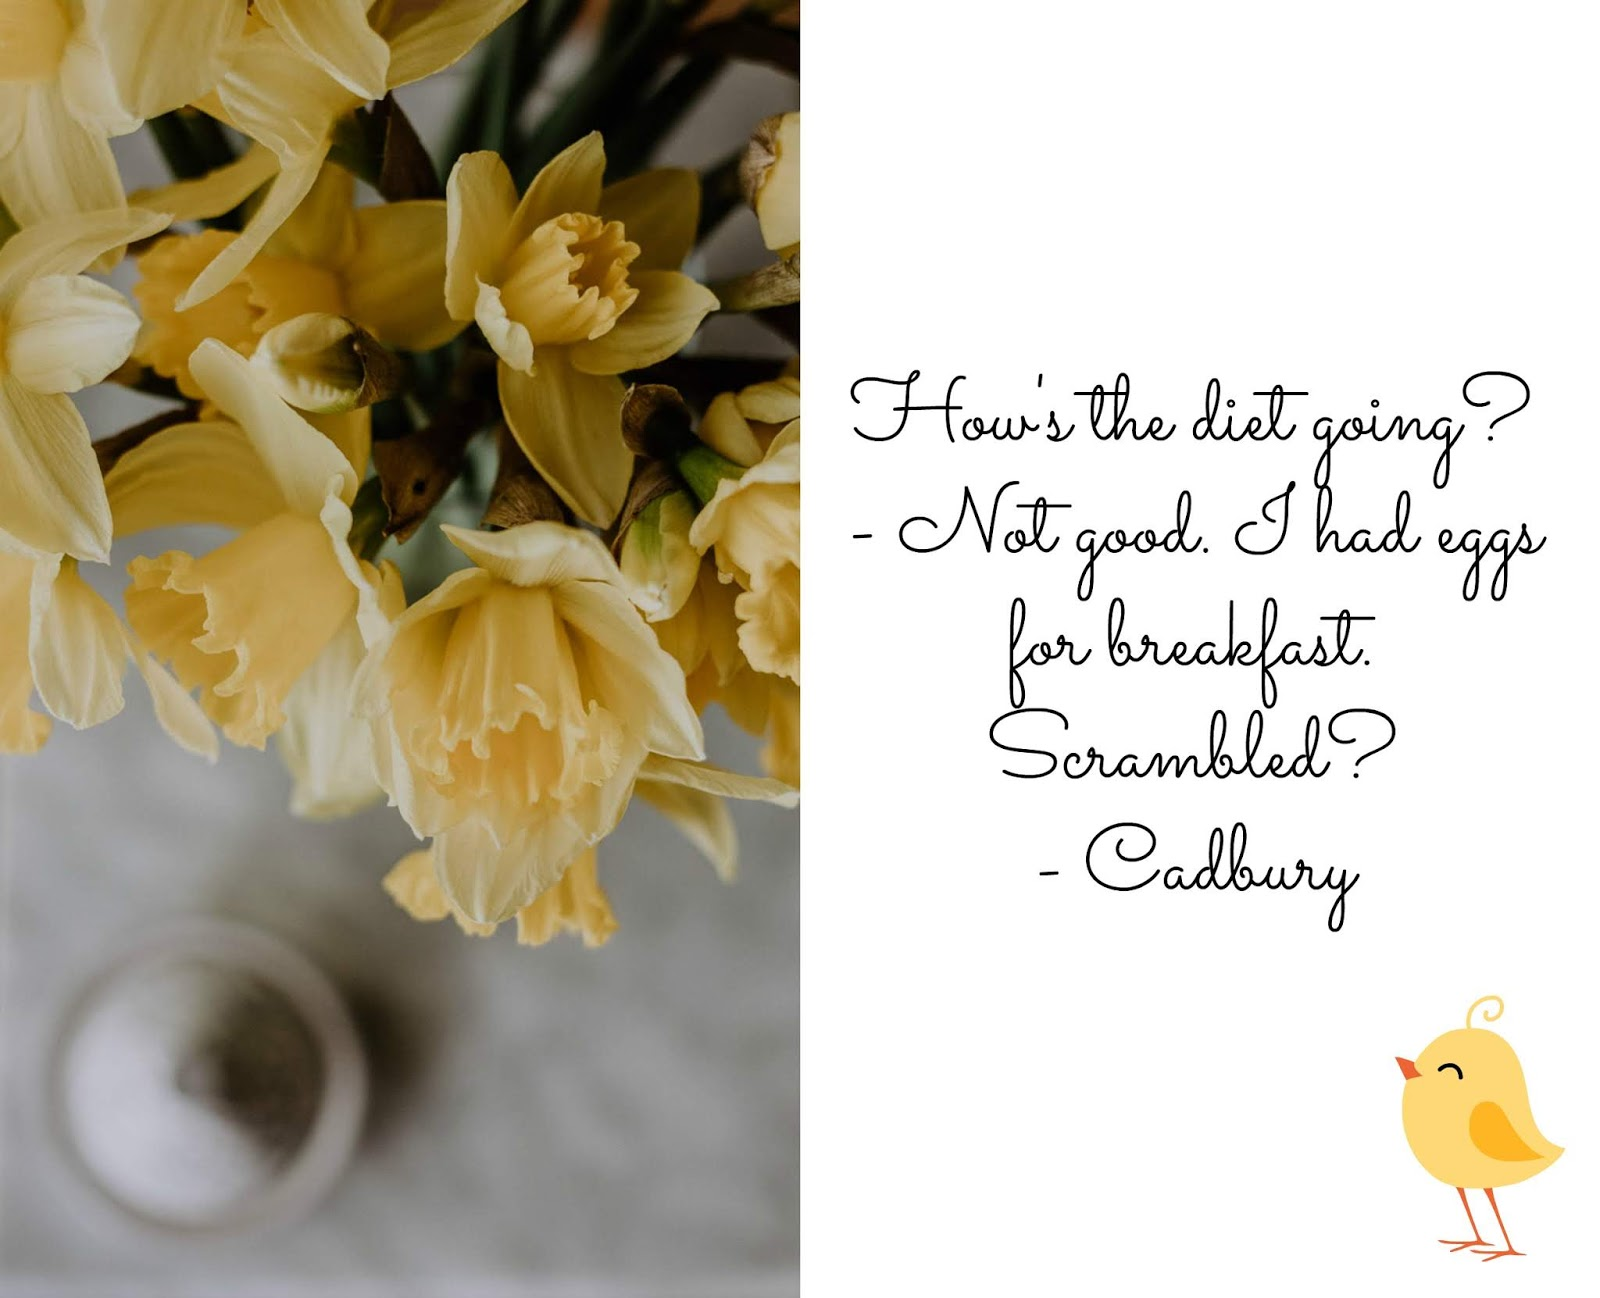 Easter greetings with quotes